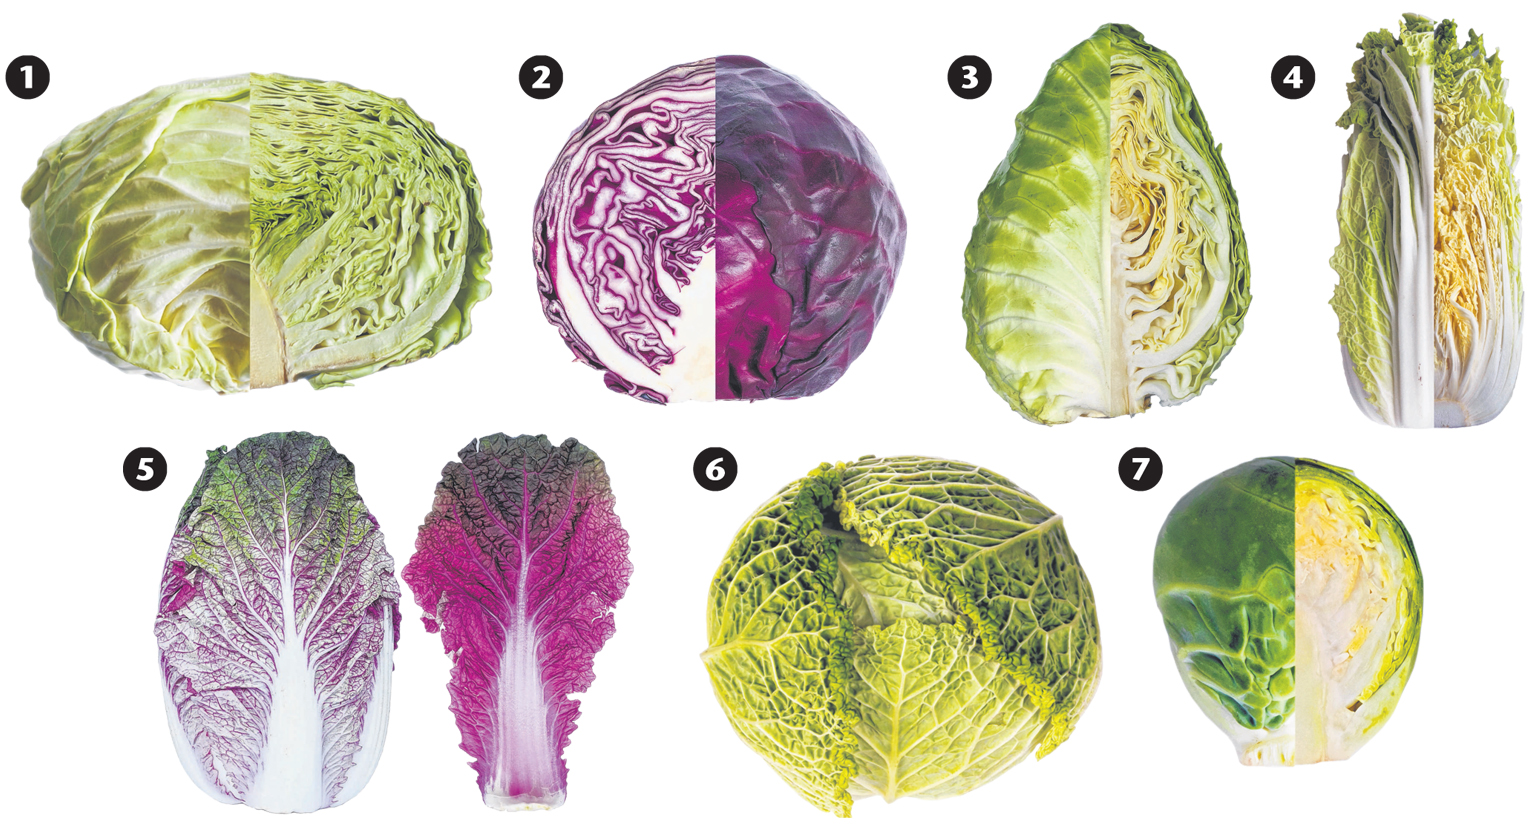 cabbage diagram.jpg